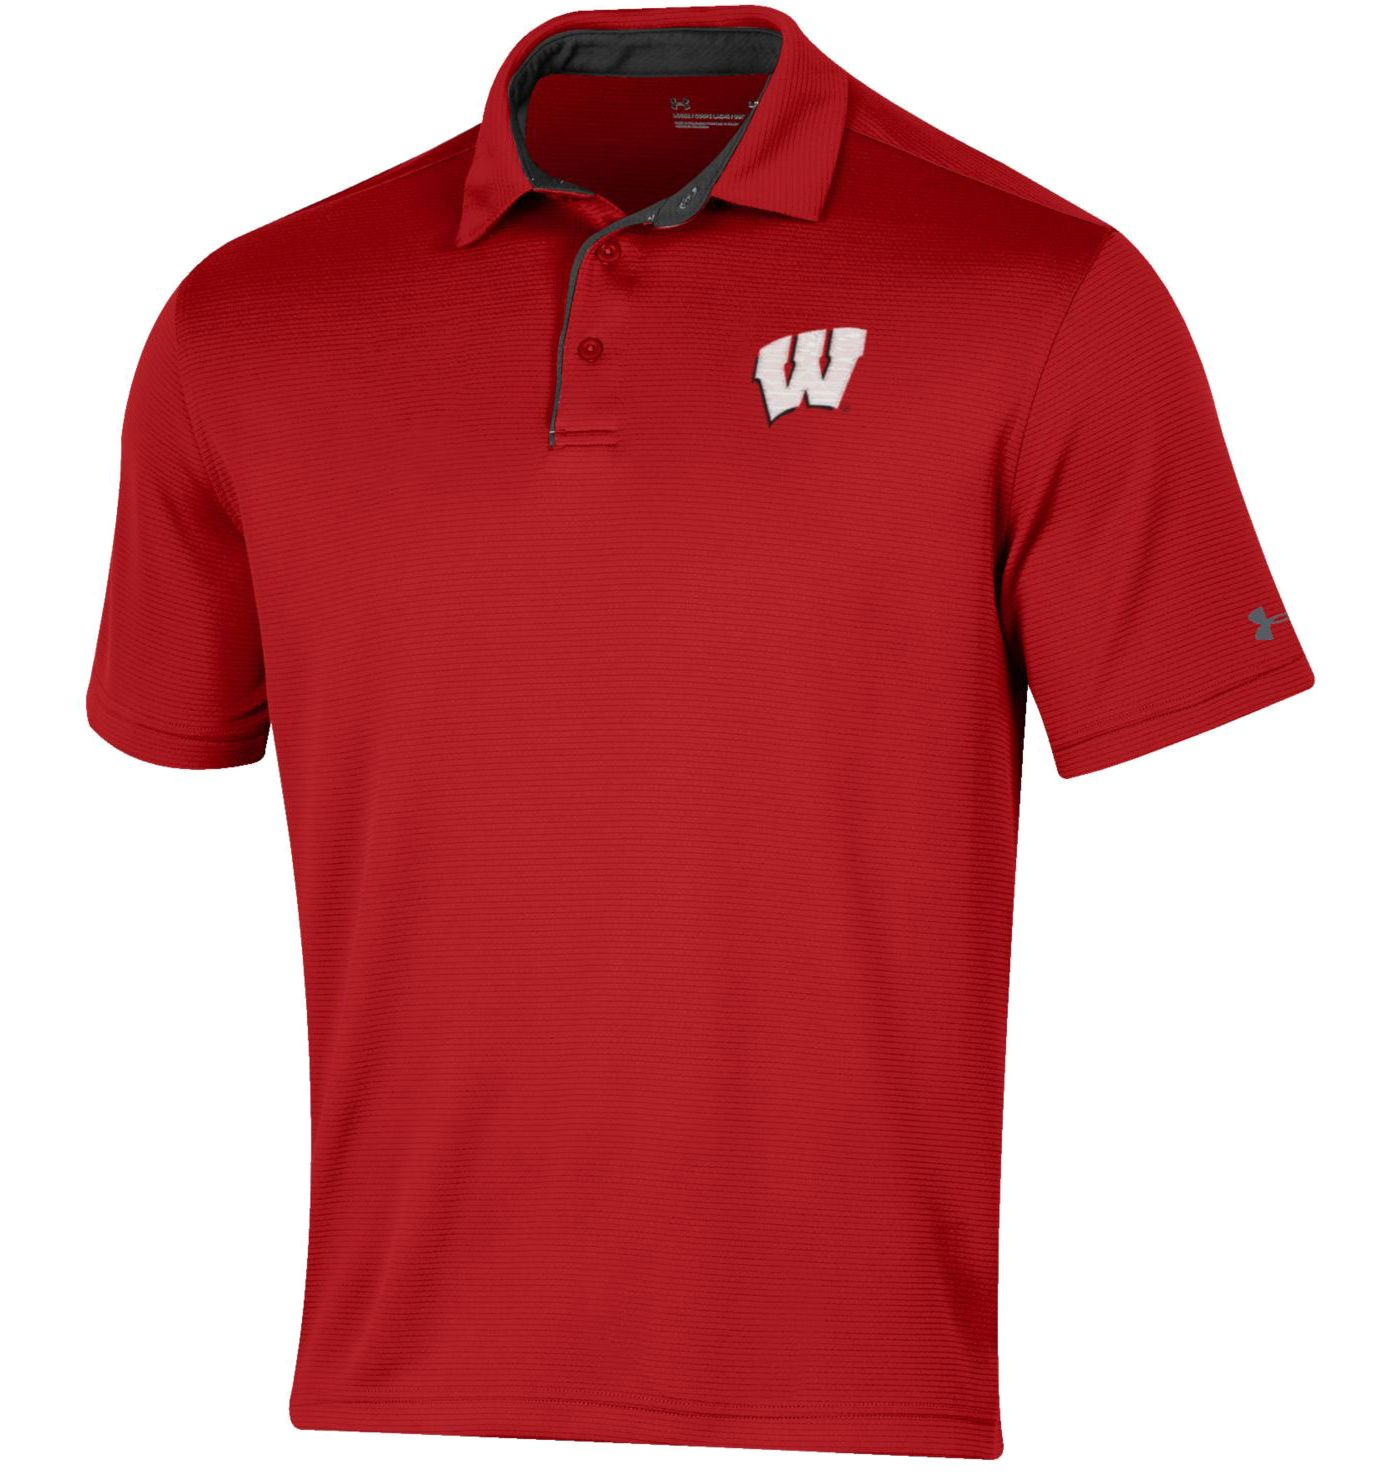 Under Armour Men's Wisconsin Badgers Red Tech Polo